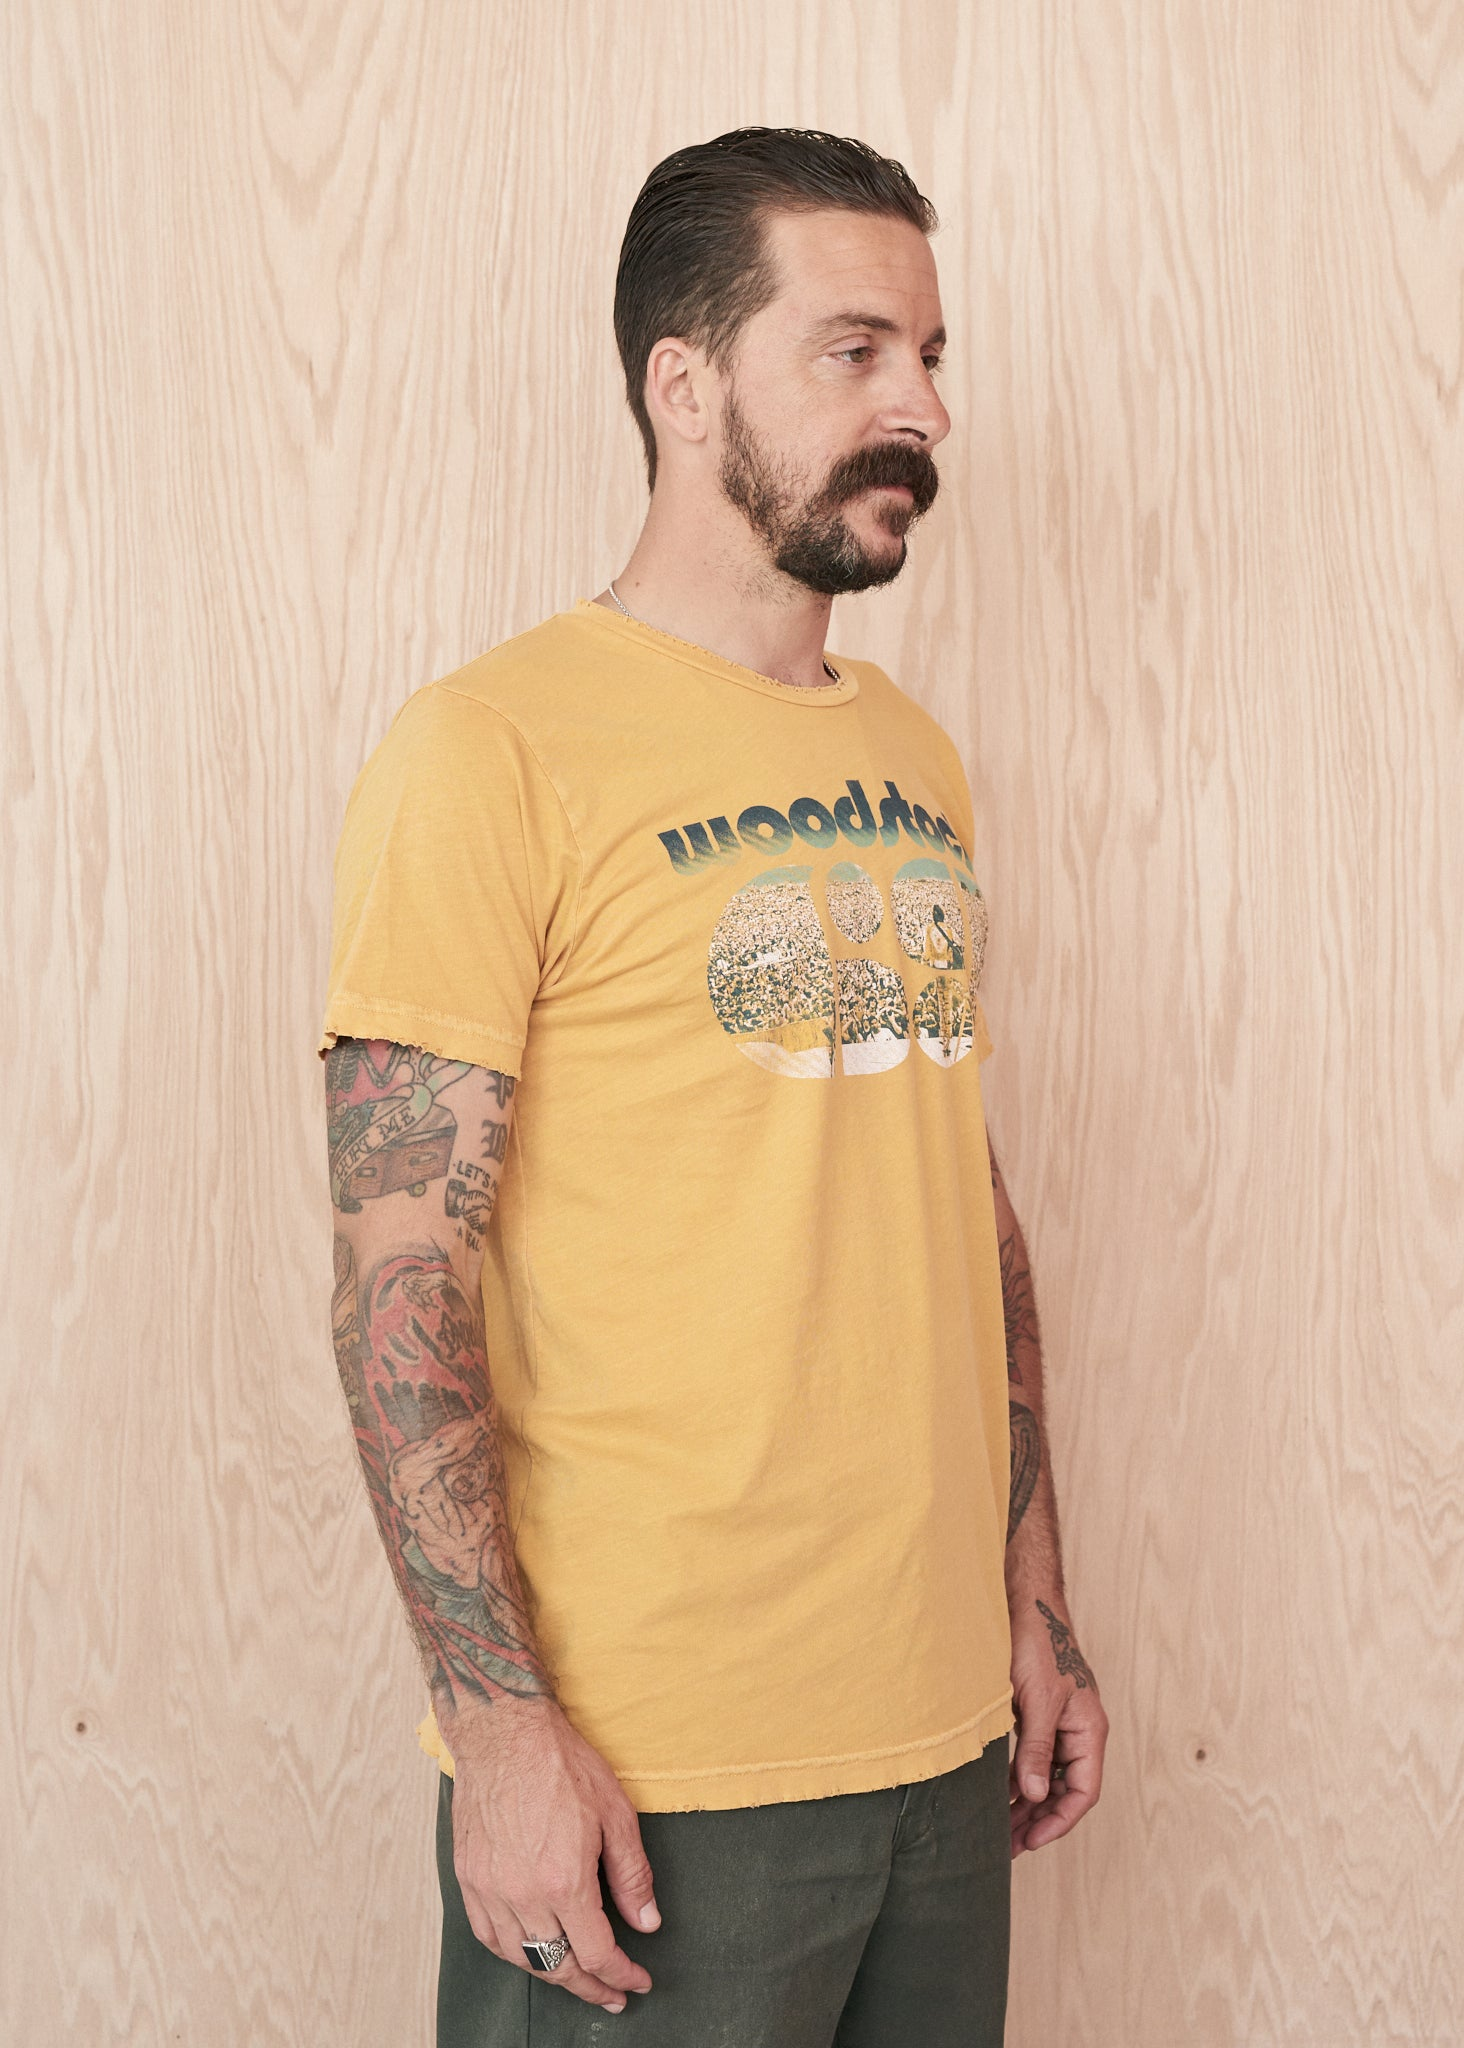 Woodstock '69 Photo Men's Tee -  - Midnight Rider